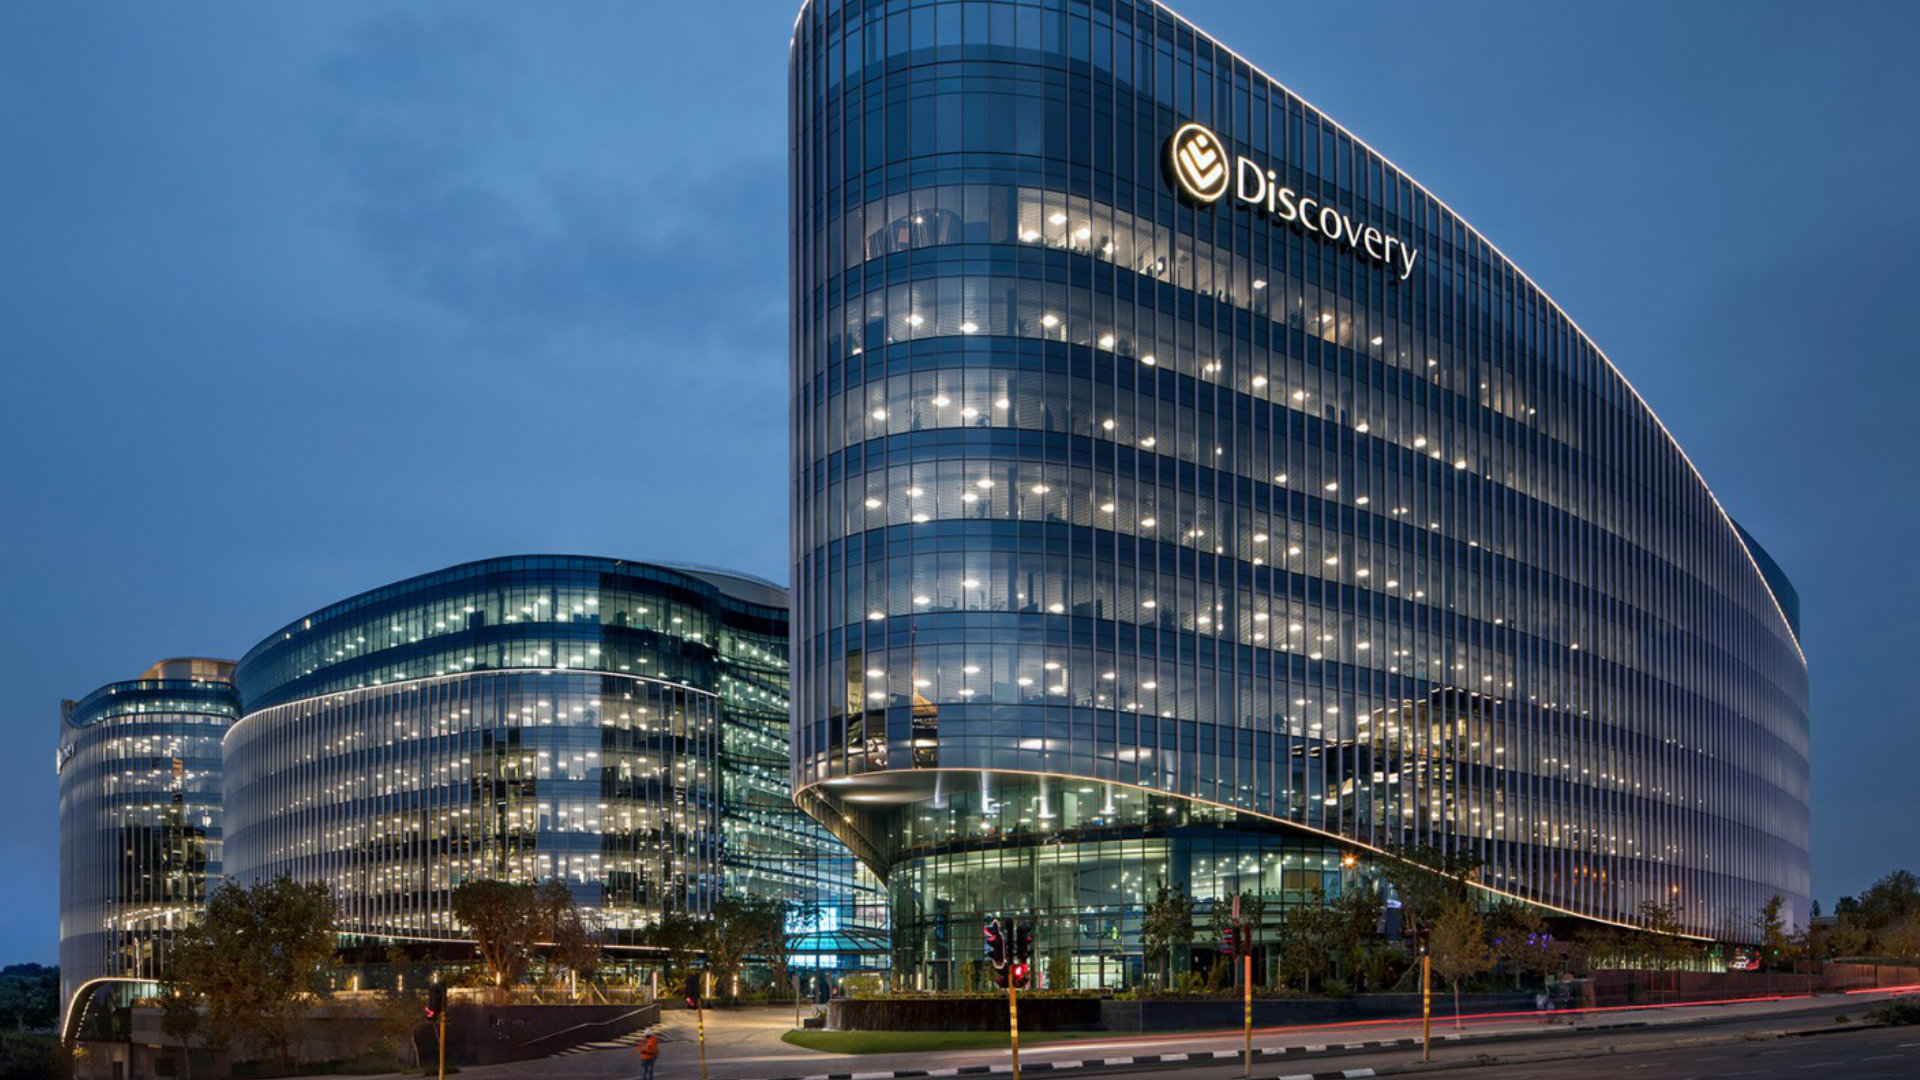 DISCOVERY HEADQUARTERS